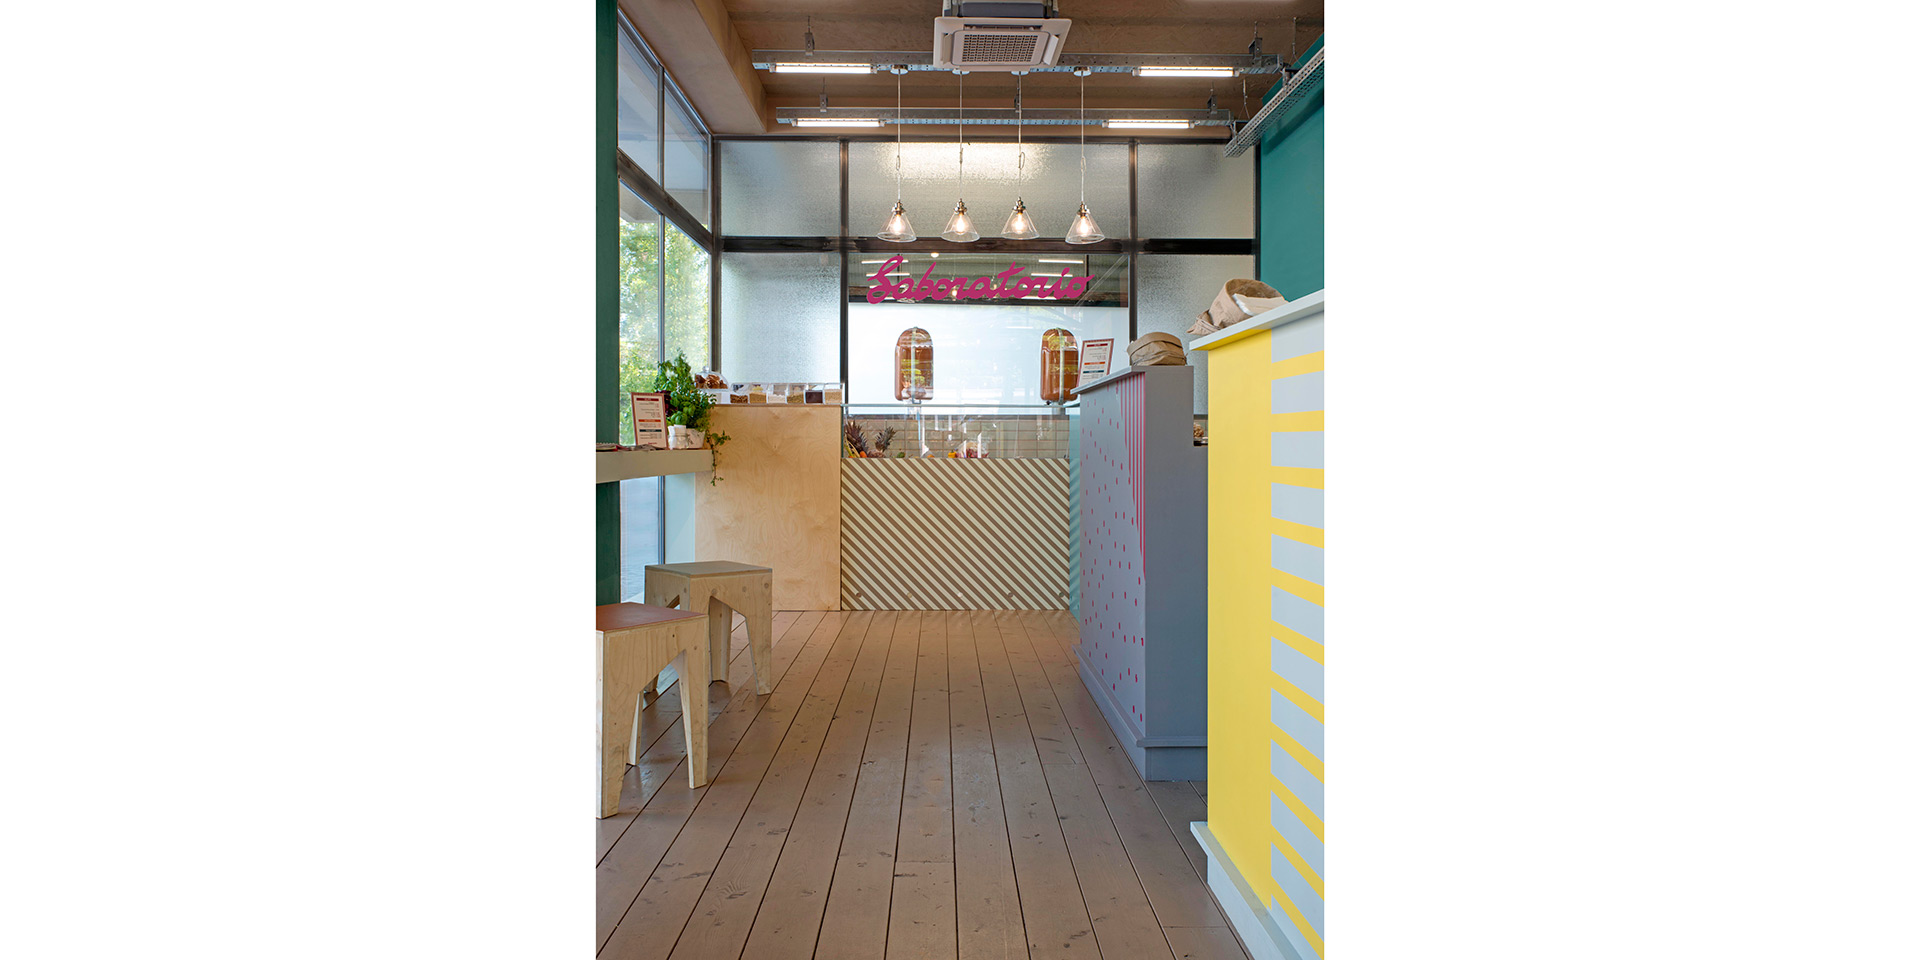 archinow_AMA_icecream-shop_03